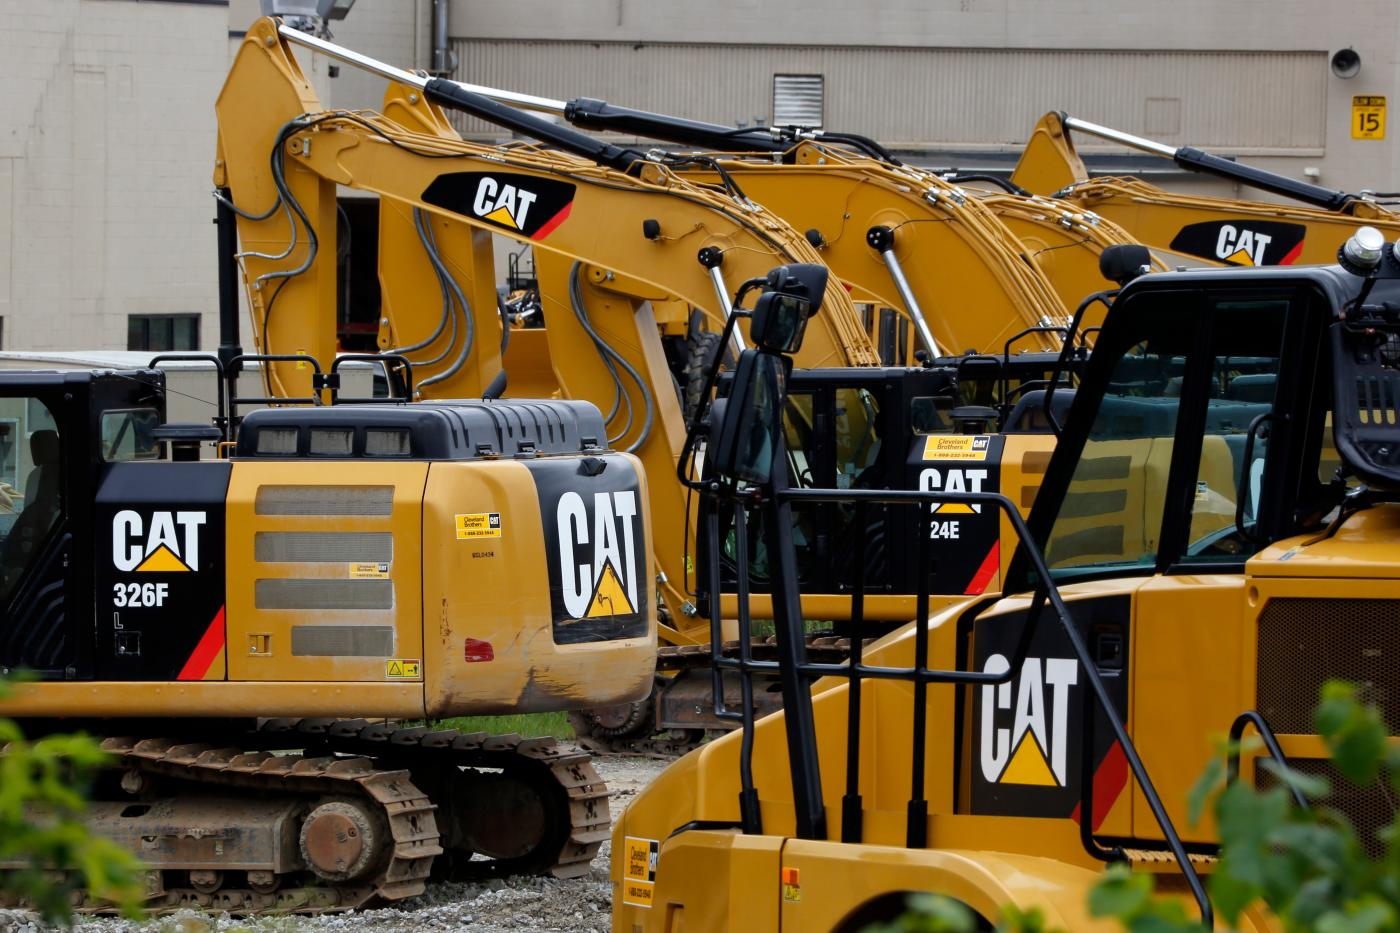 Caterpillar posts disappointing earnings, blaming China's